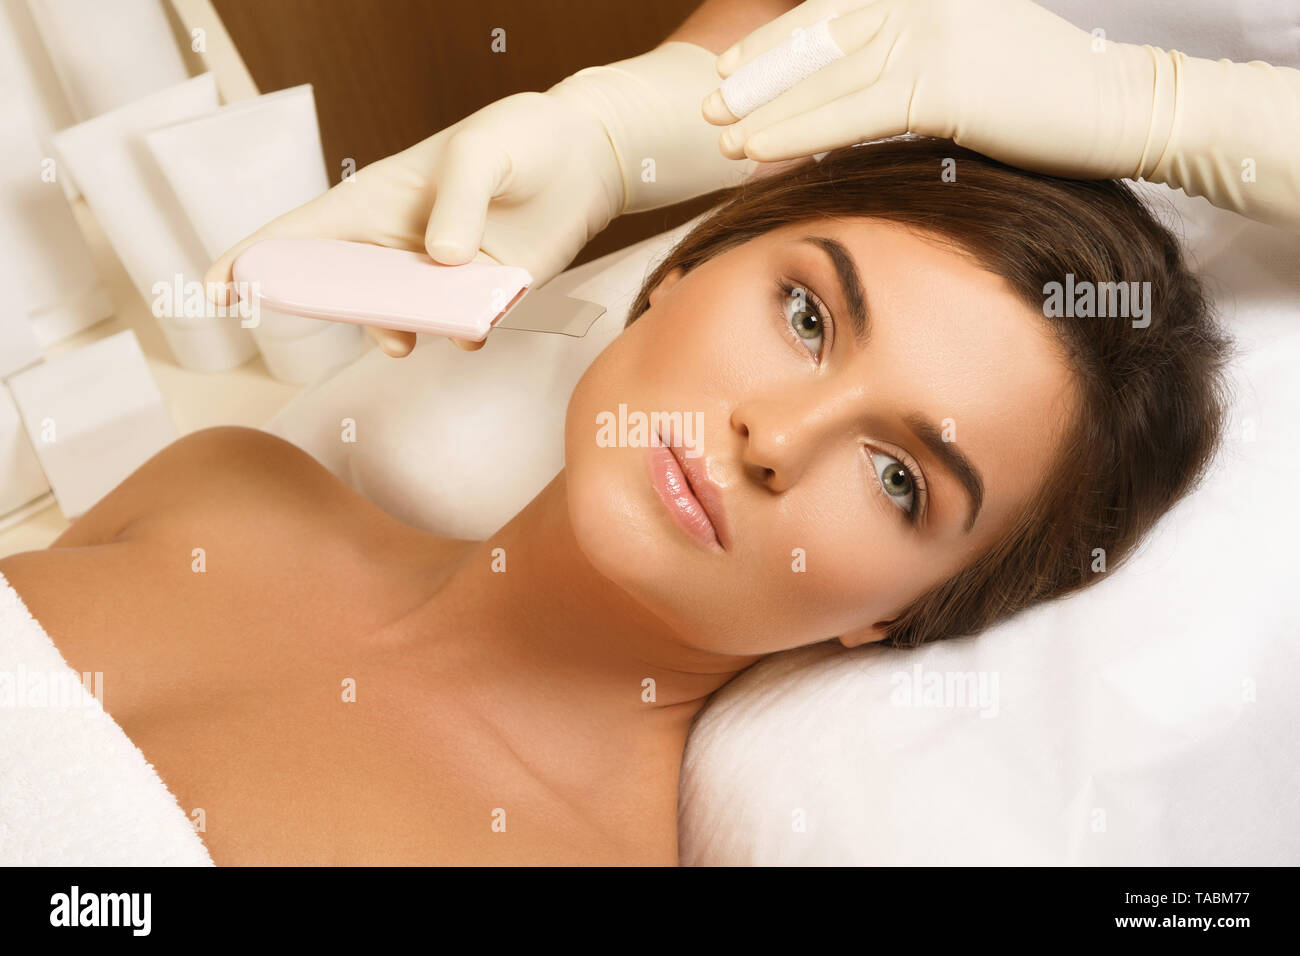 Beautiful woman in professional beauty spa salon during ultrasonic facial cleansing procedure - Stock Image